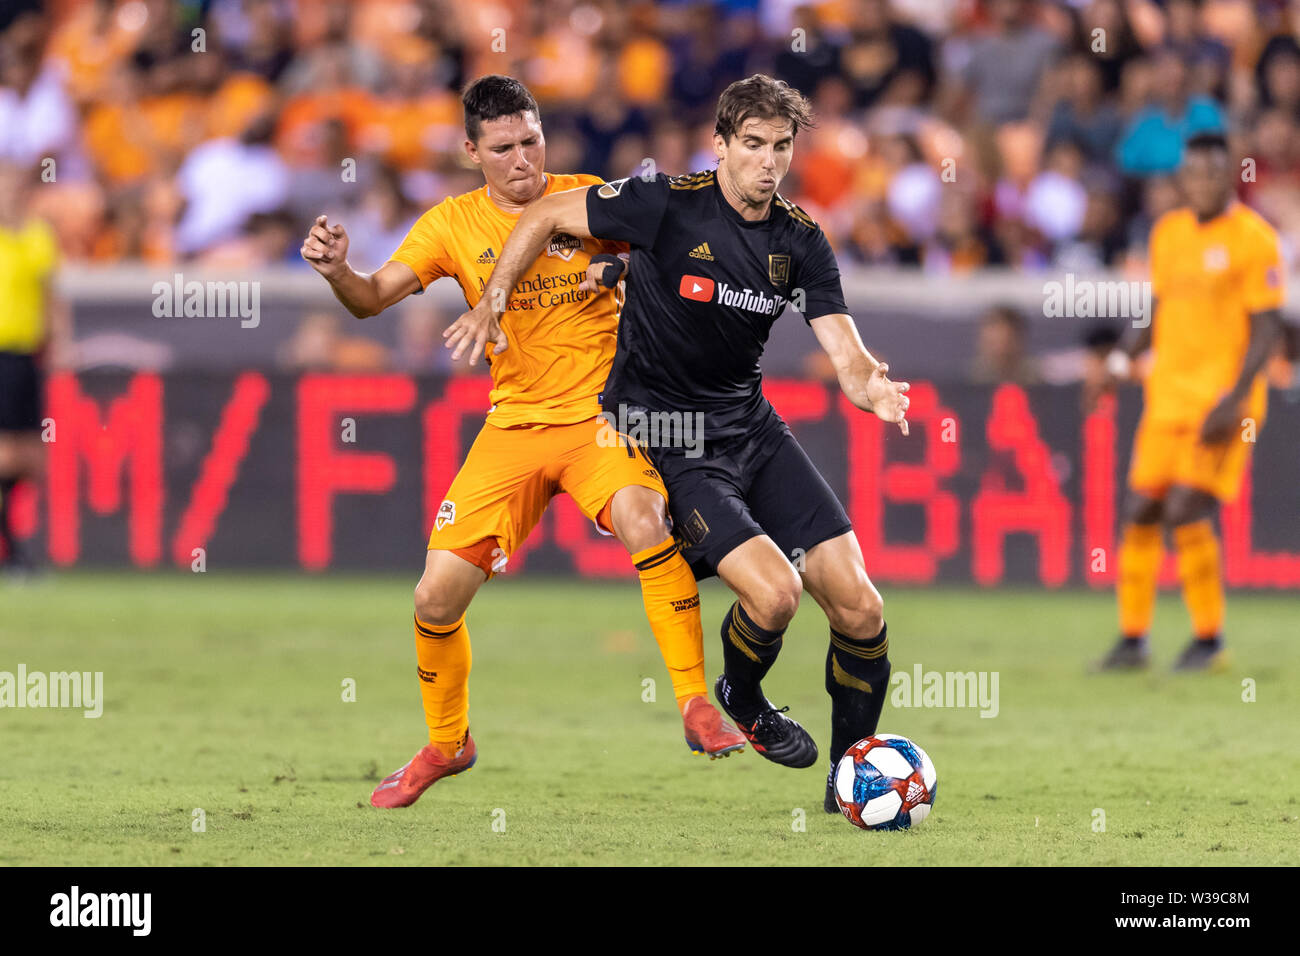 Houston, Texas, USA. 12th July, 2019. Houston Dynamo midfielder Tomas Martinez (10) looks to control the ball from Los Angeles FC defender Dejan Jakovic (5) during a match between Los Angeles FC and Houston Dynamo at BBVA Stadium in Houston, Texas. The final LAFC wins 3-1. Maria Lysaker/CSM/Alamy Live News - Stock Image